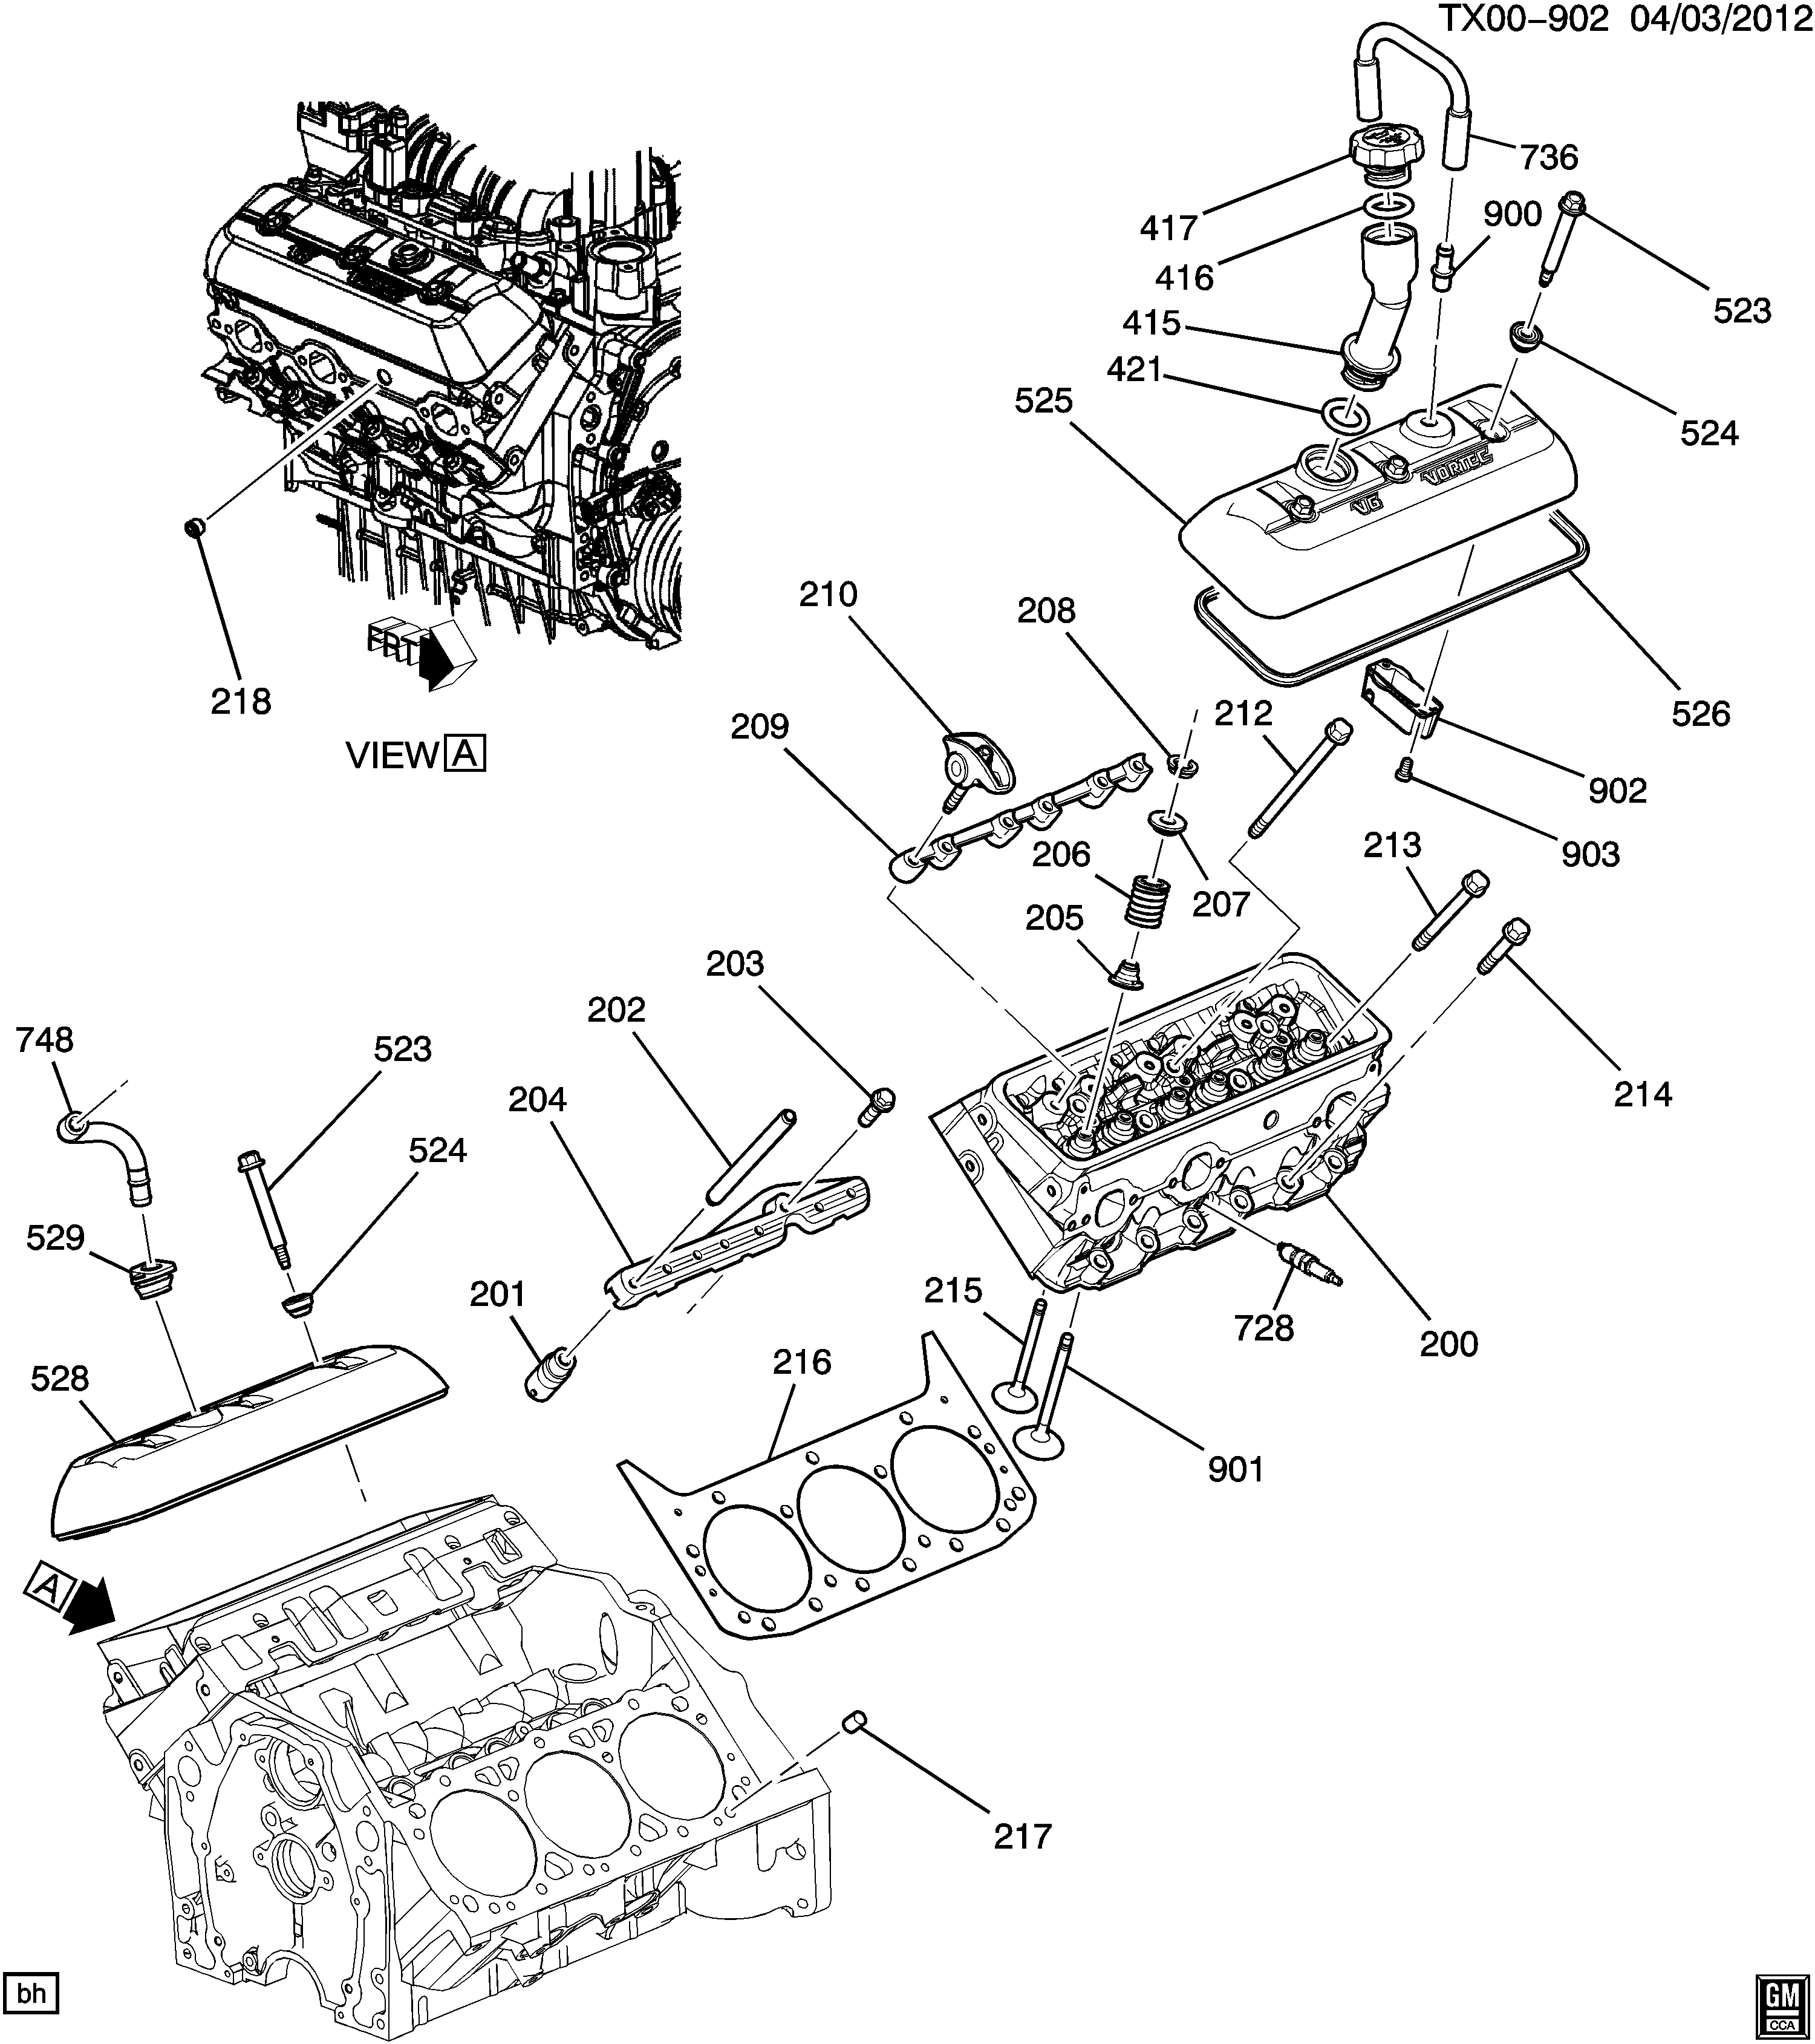 Chevy 4 3 V6 Engine Head Diagram - Wiring Diagram